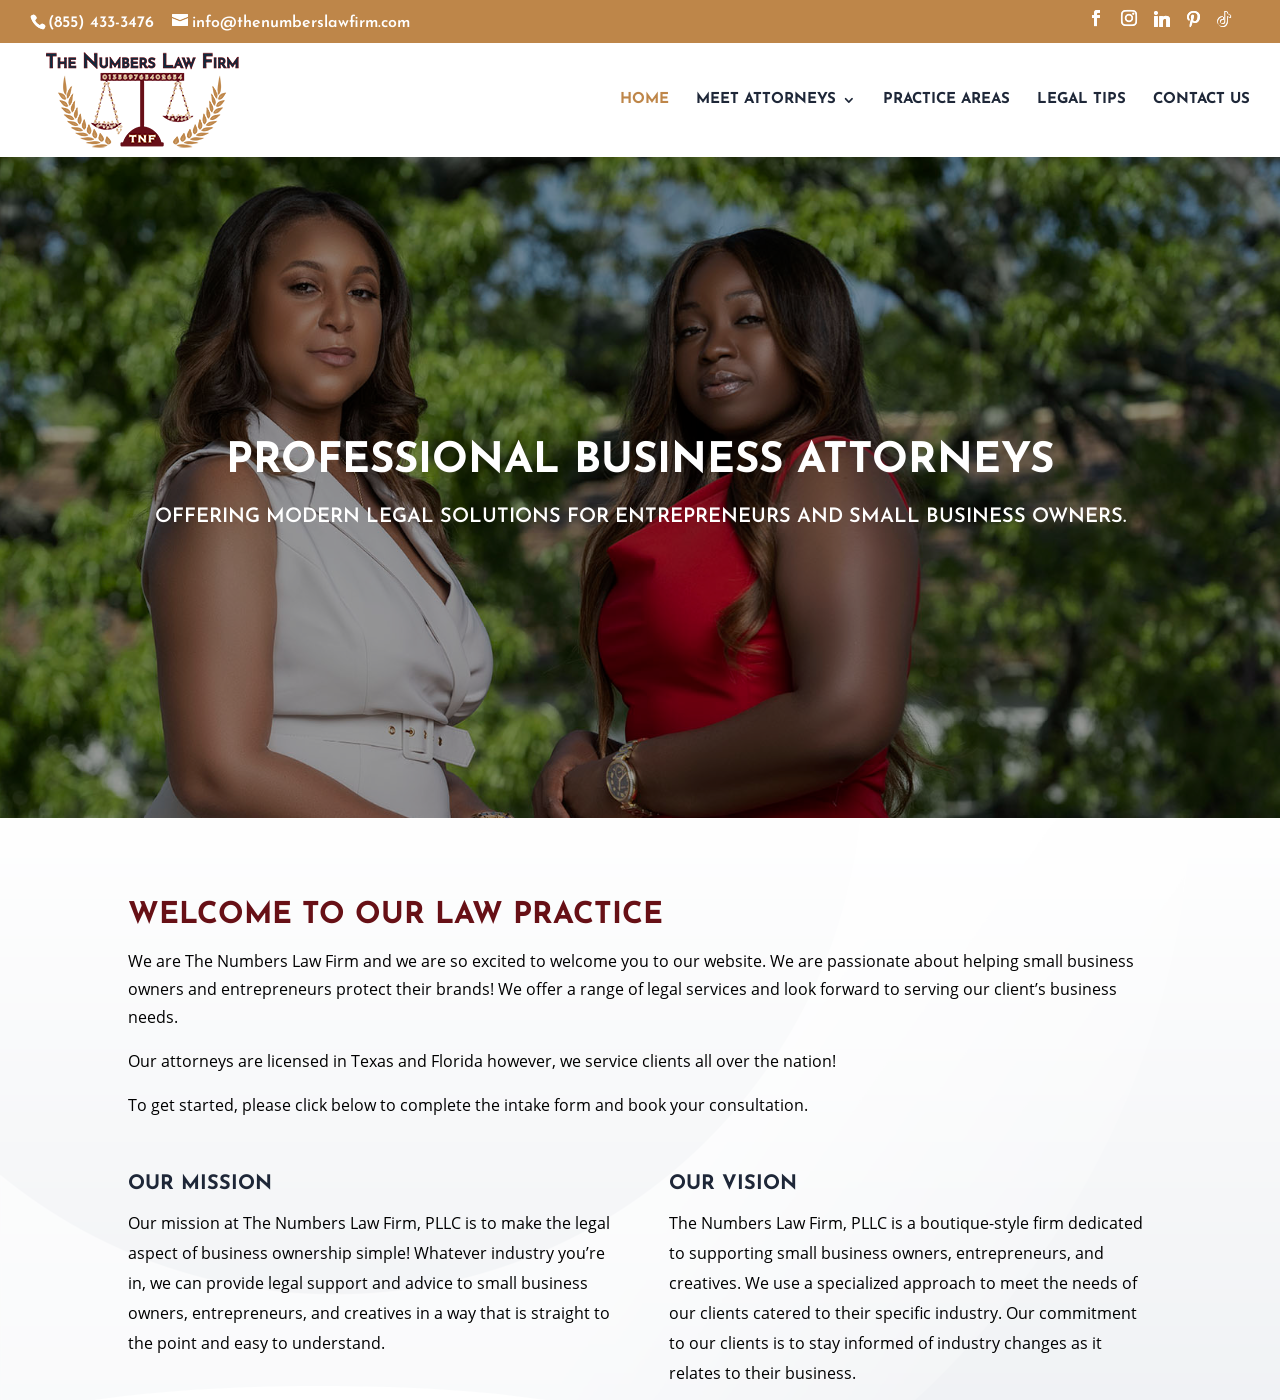 Birmingham Website Design Agency - C Kinion Design - The Numbers Law Firm LLC - Half Page